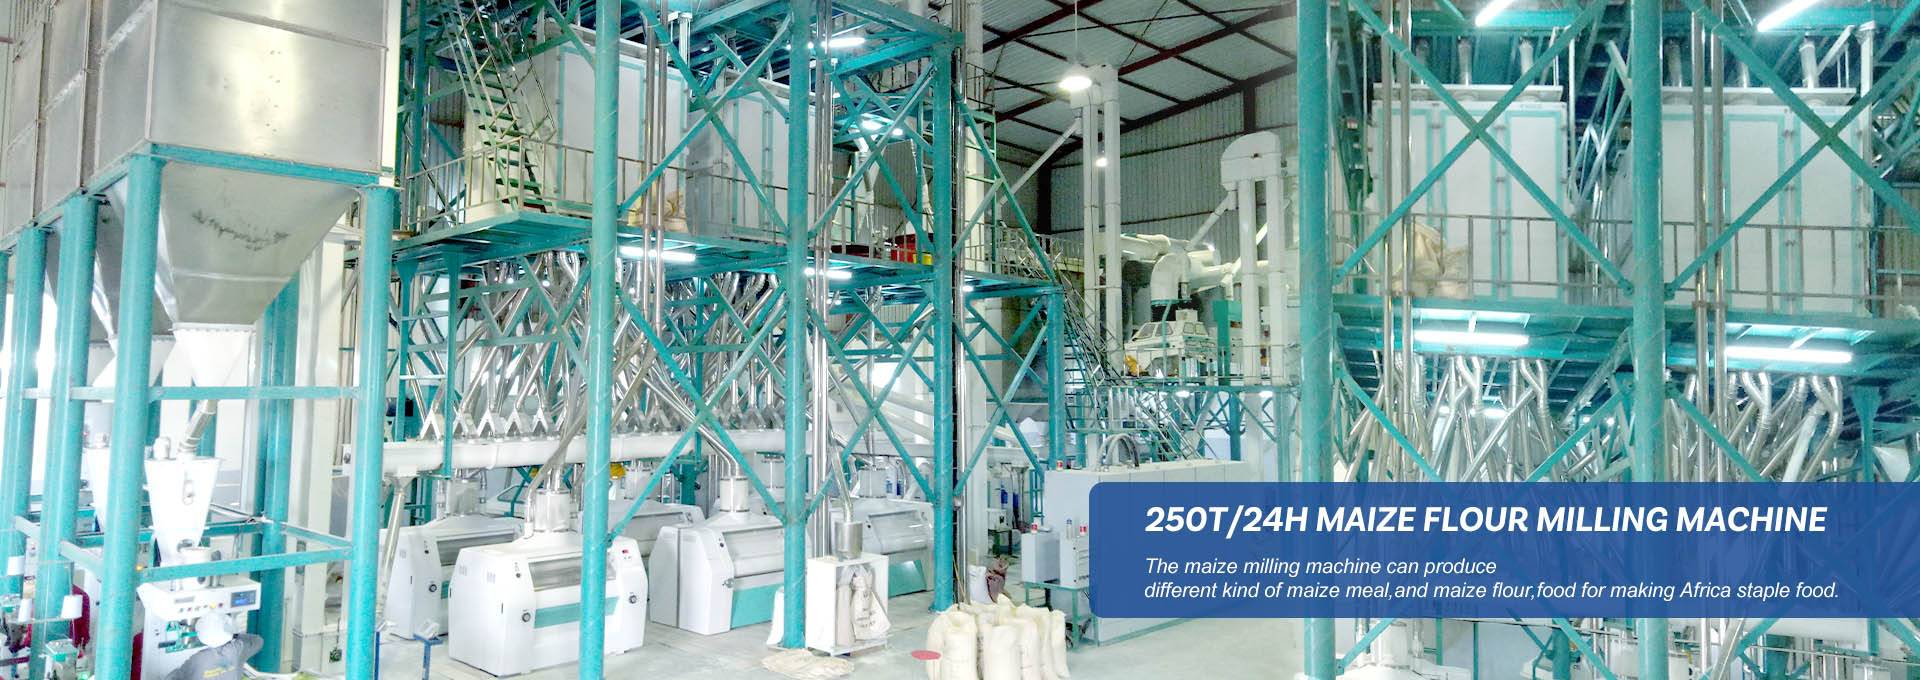 250T/24H MAIZE FLOUR MILLING MACHINE